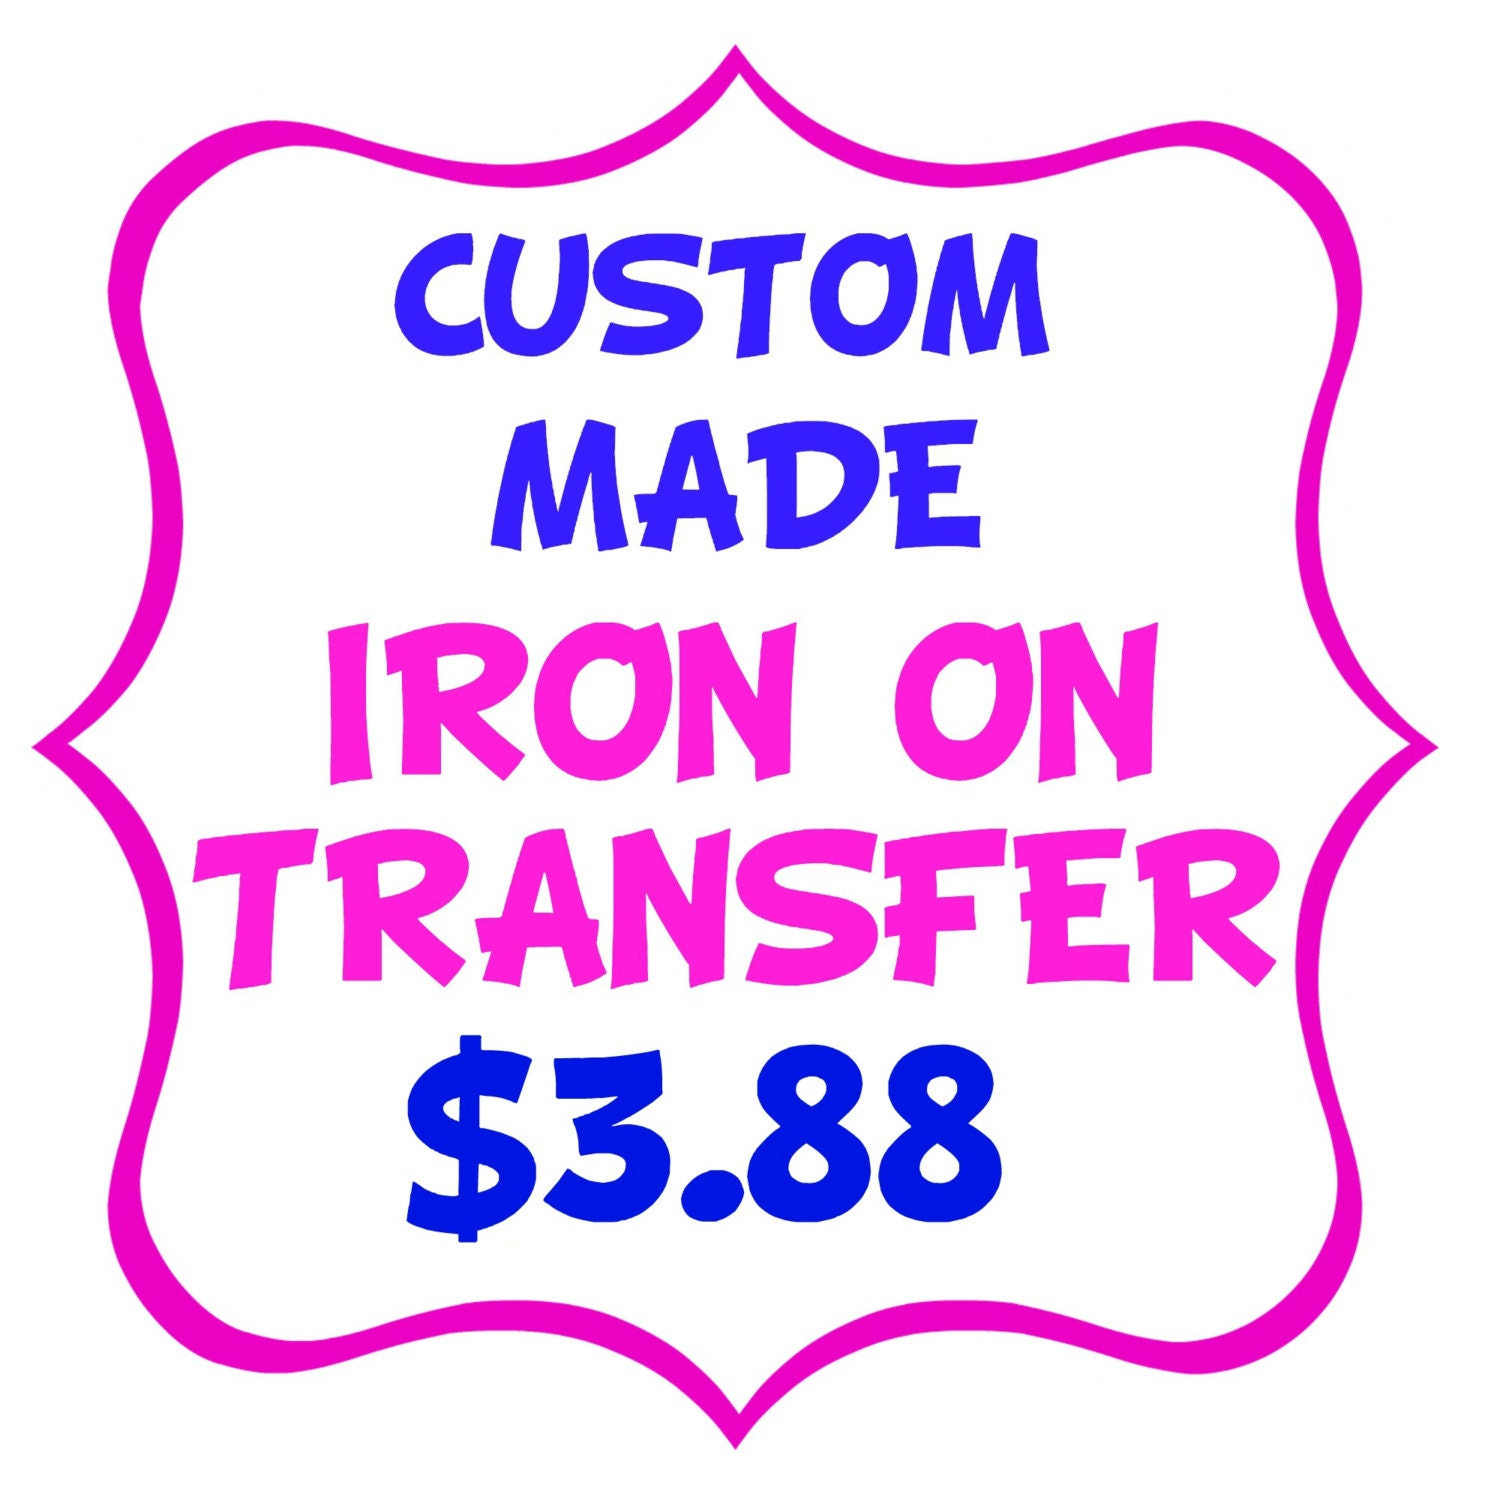 Custom made iron on transfer tshirt shirt image printable for Create your own iron on transfer for t shirt